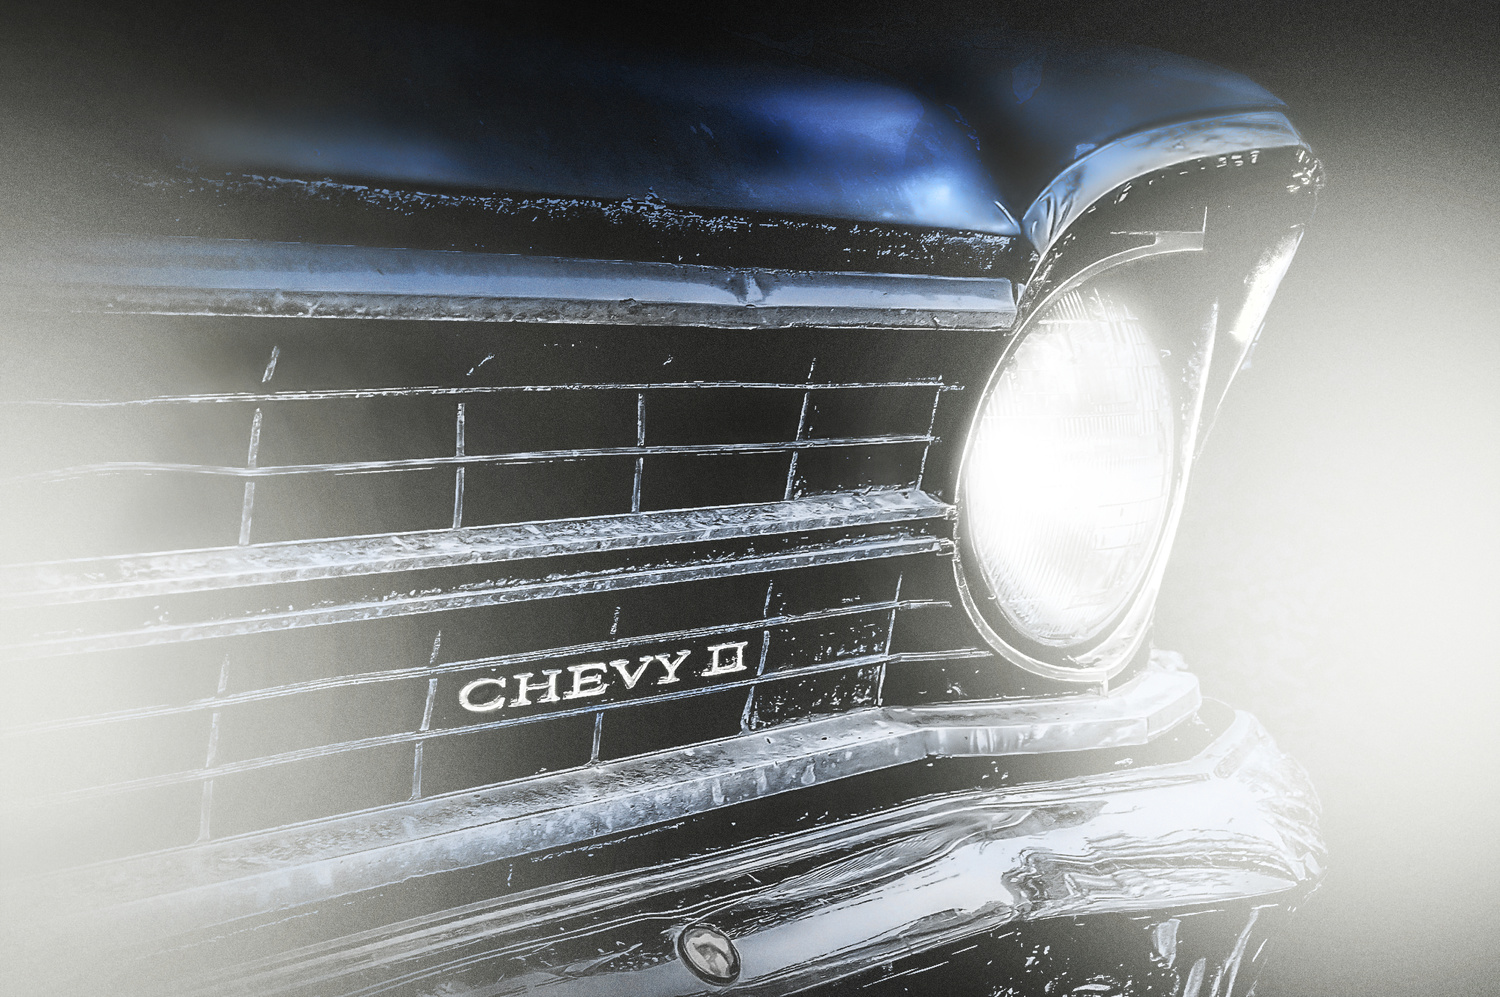 Chevy Memories by Heather Langlois